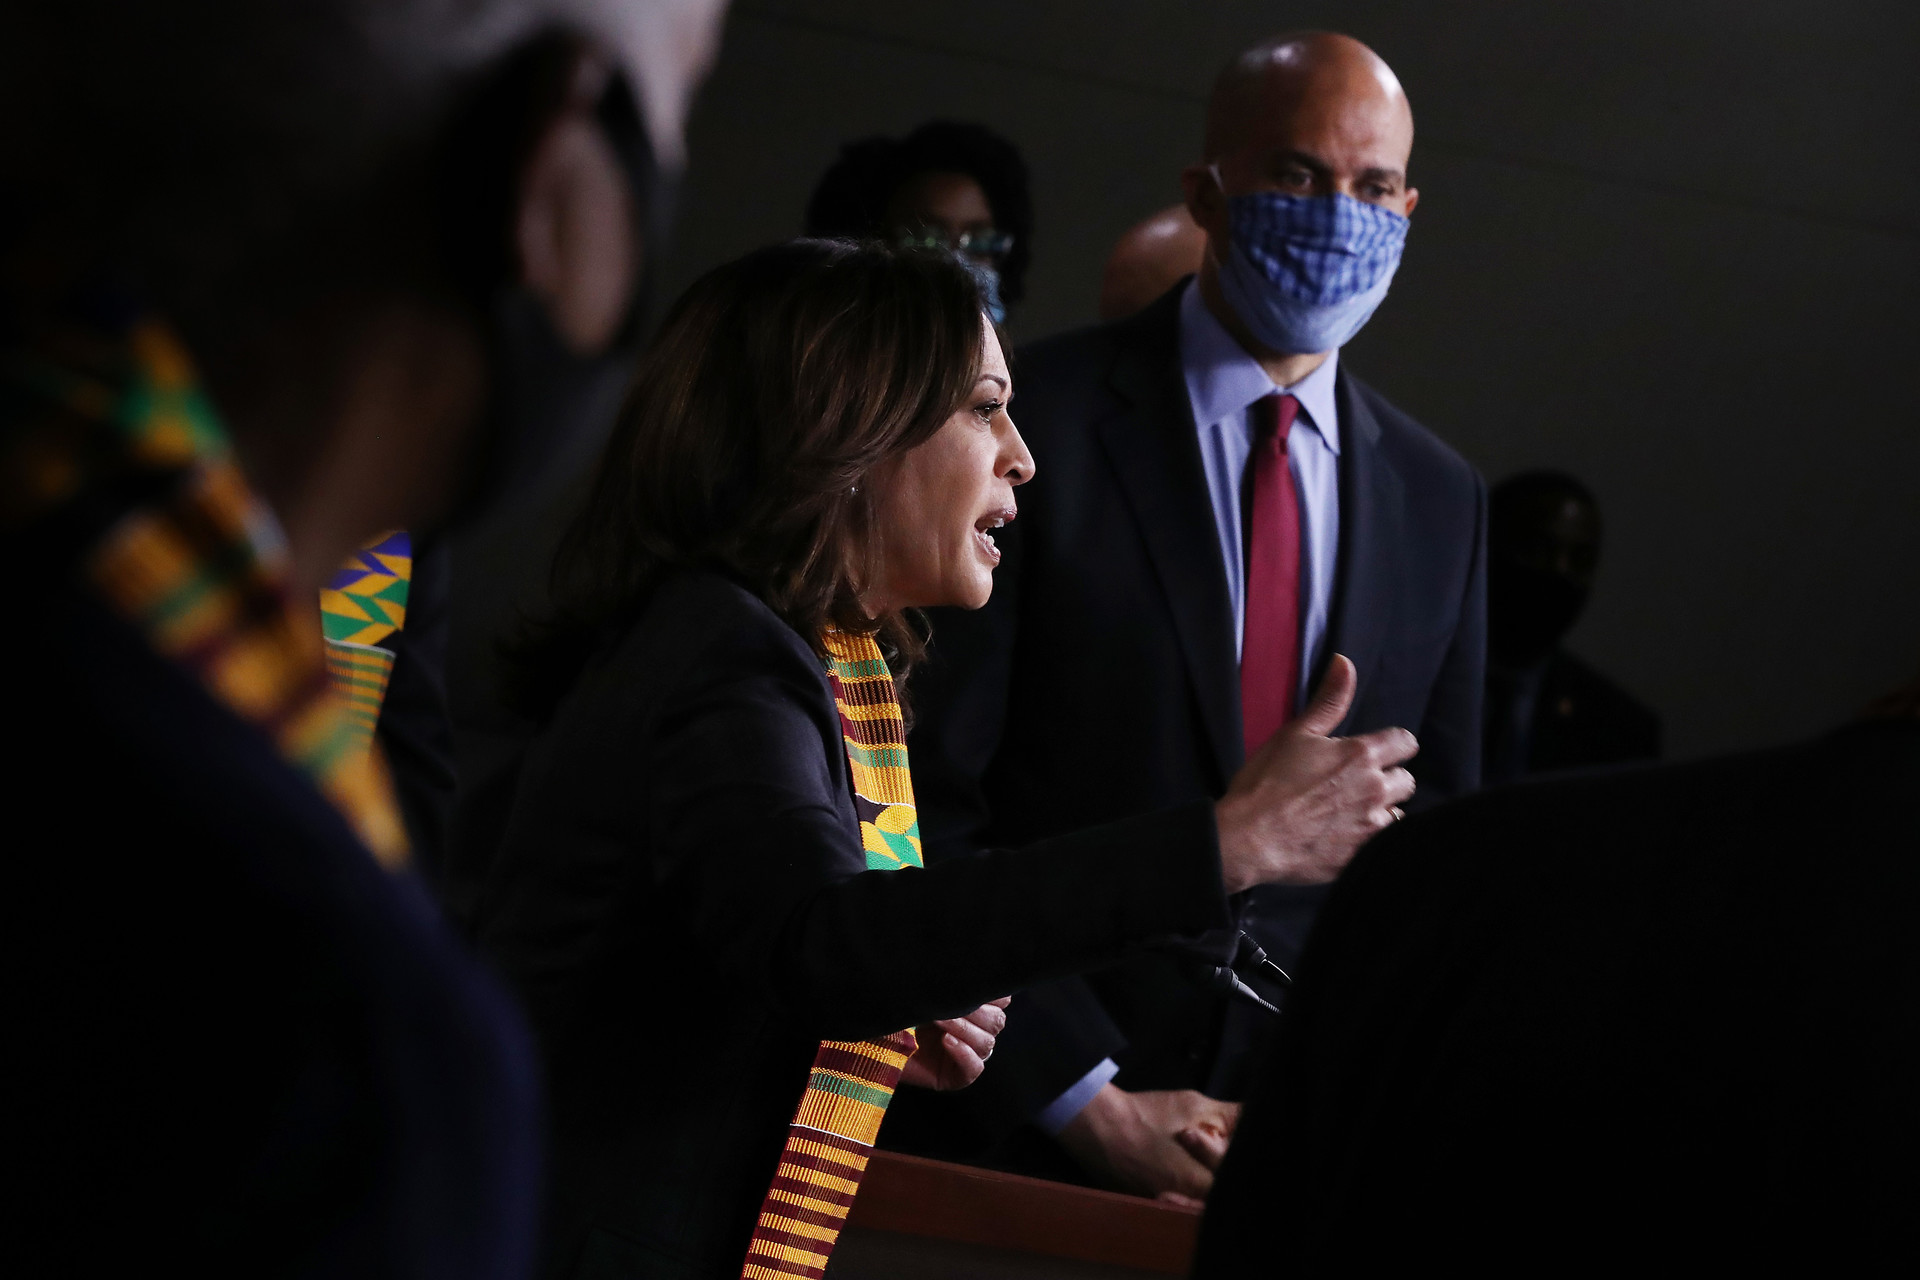 Sen. Kamala Harris (D-CA) (L) and Sen. Cory Booker (D-NJ) join fellow Democrats from the House and Senate to introduce new legislation to end excessive use of force by police and make it easier to identify, track, and prosecute police misconduct at the U.S. Capitol June 08, 2020.